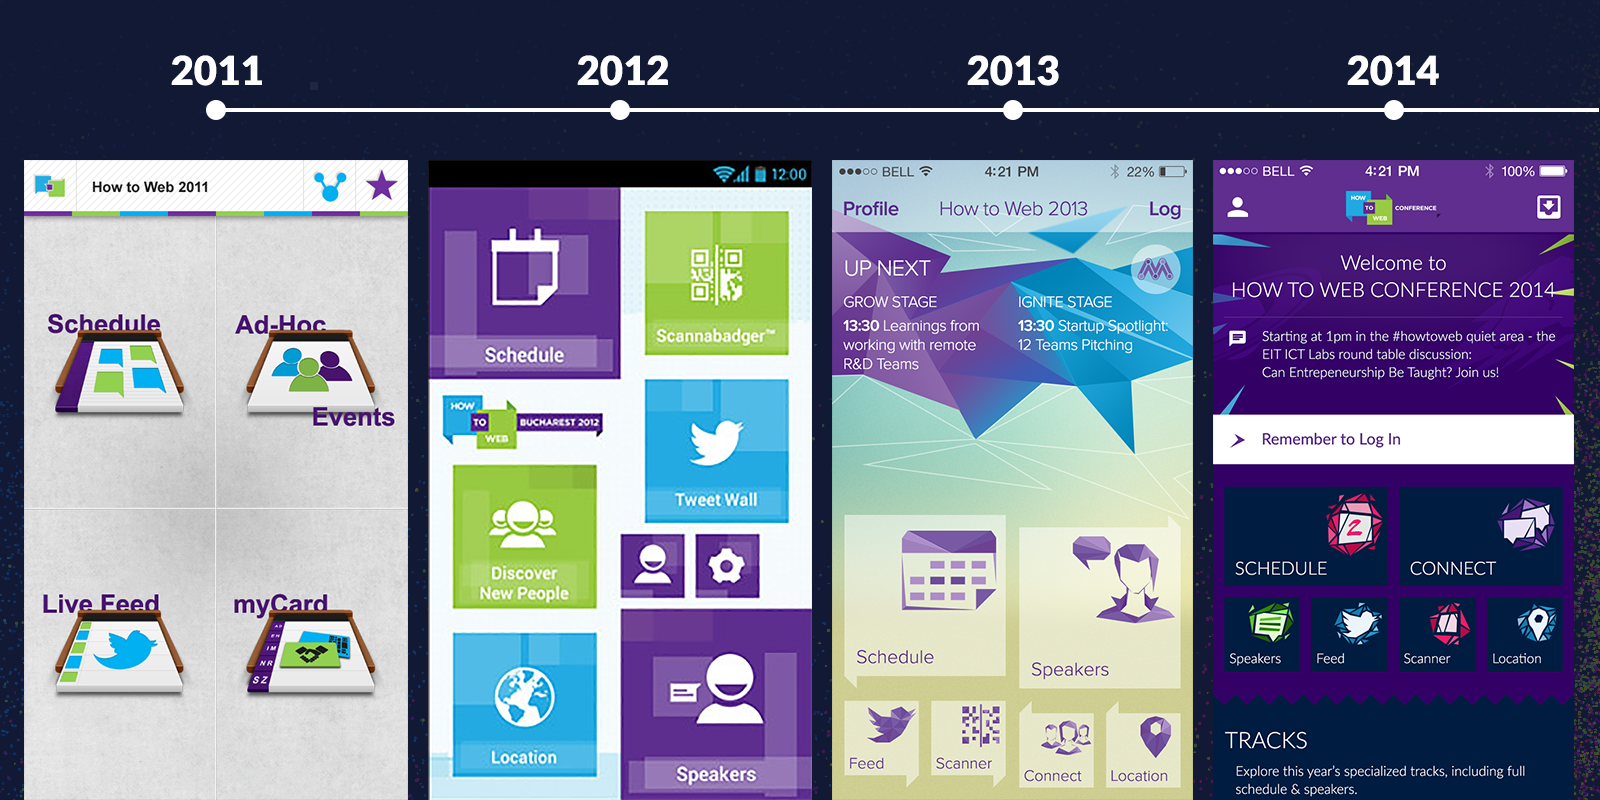 how to web conference app 2011, 2012, 2013, 2014